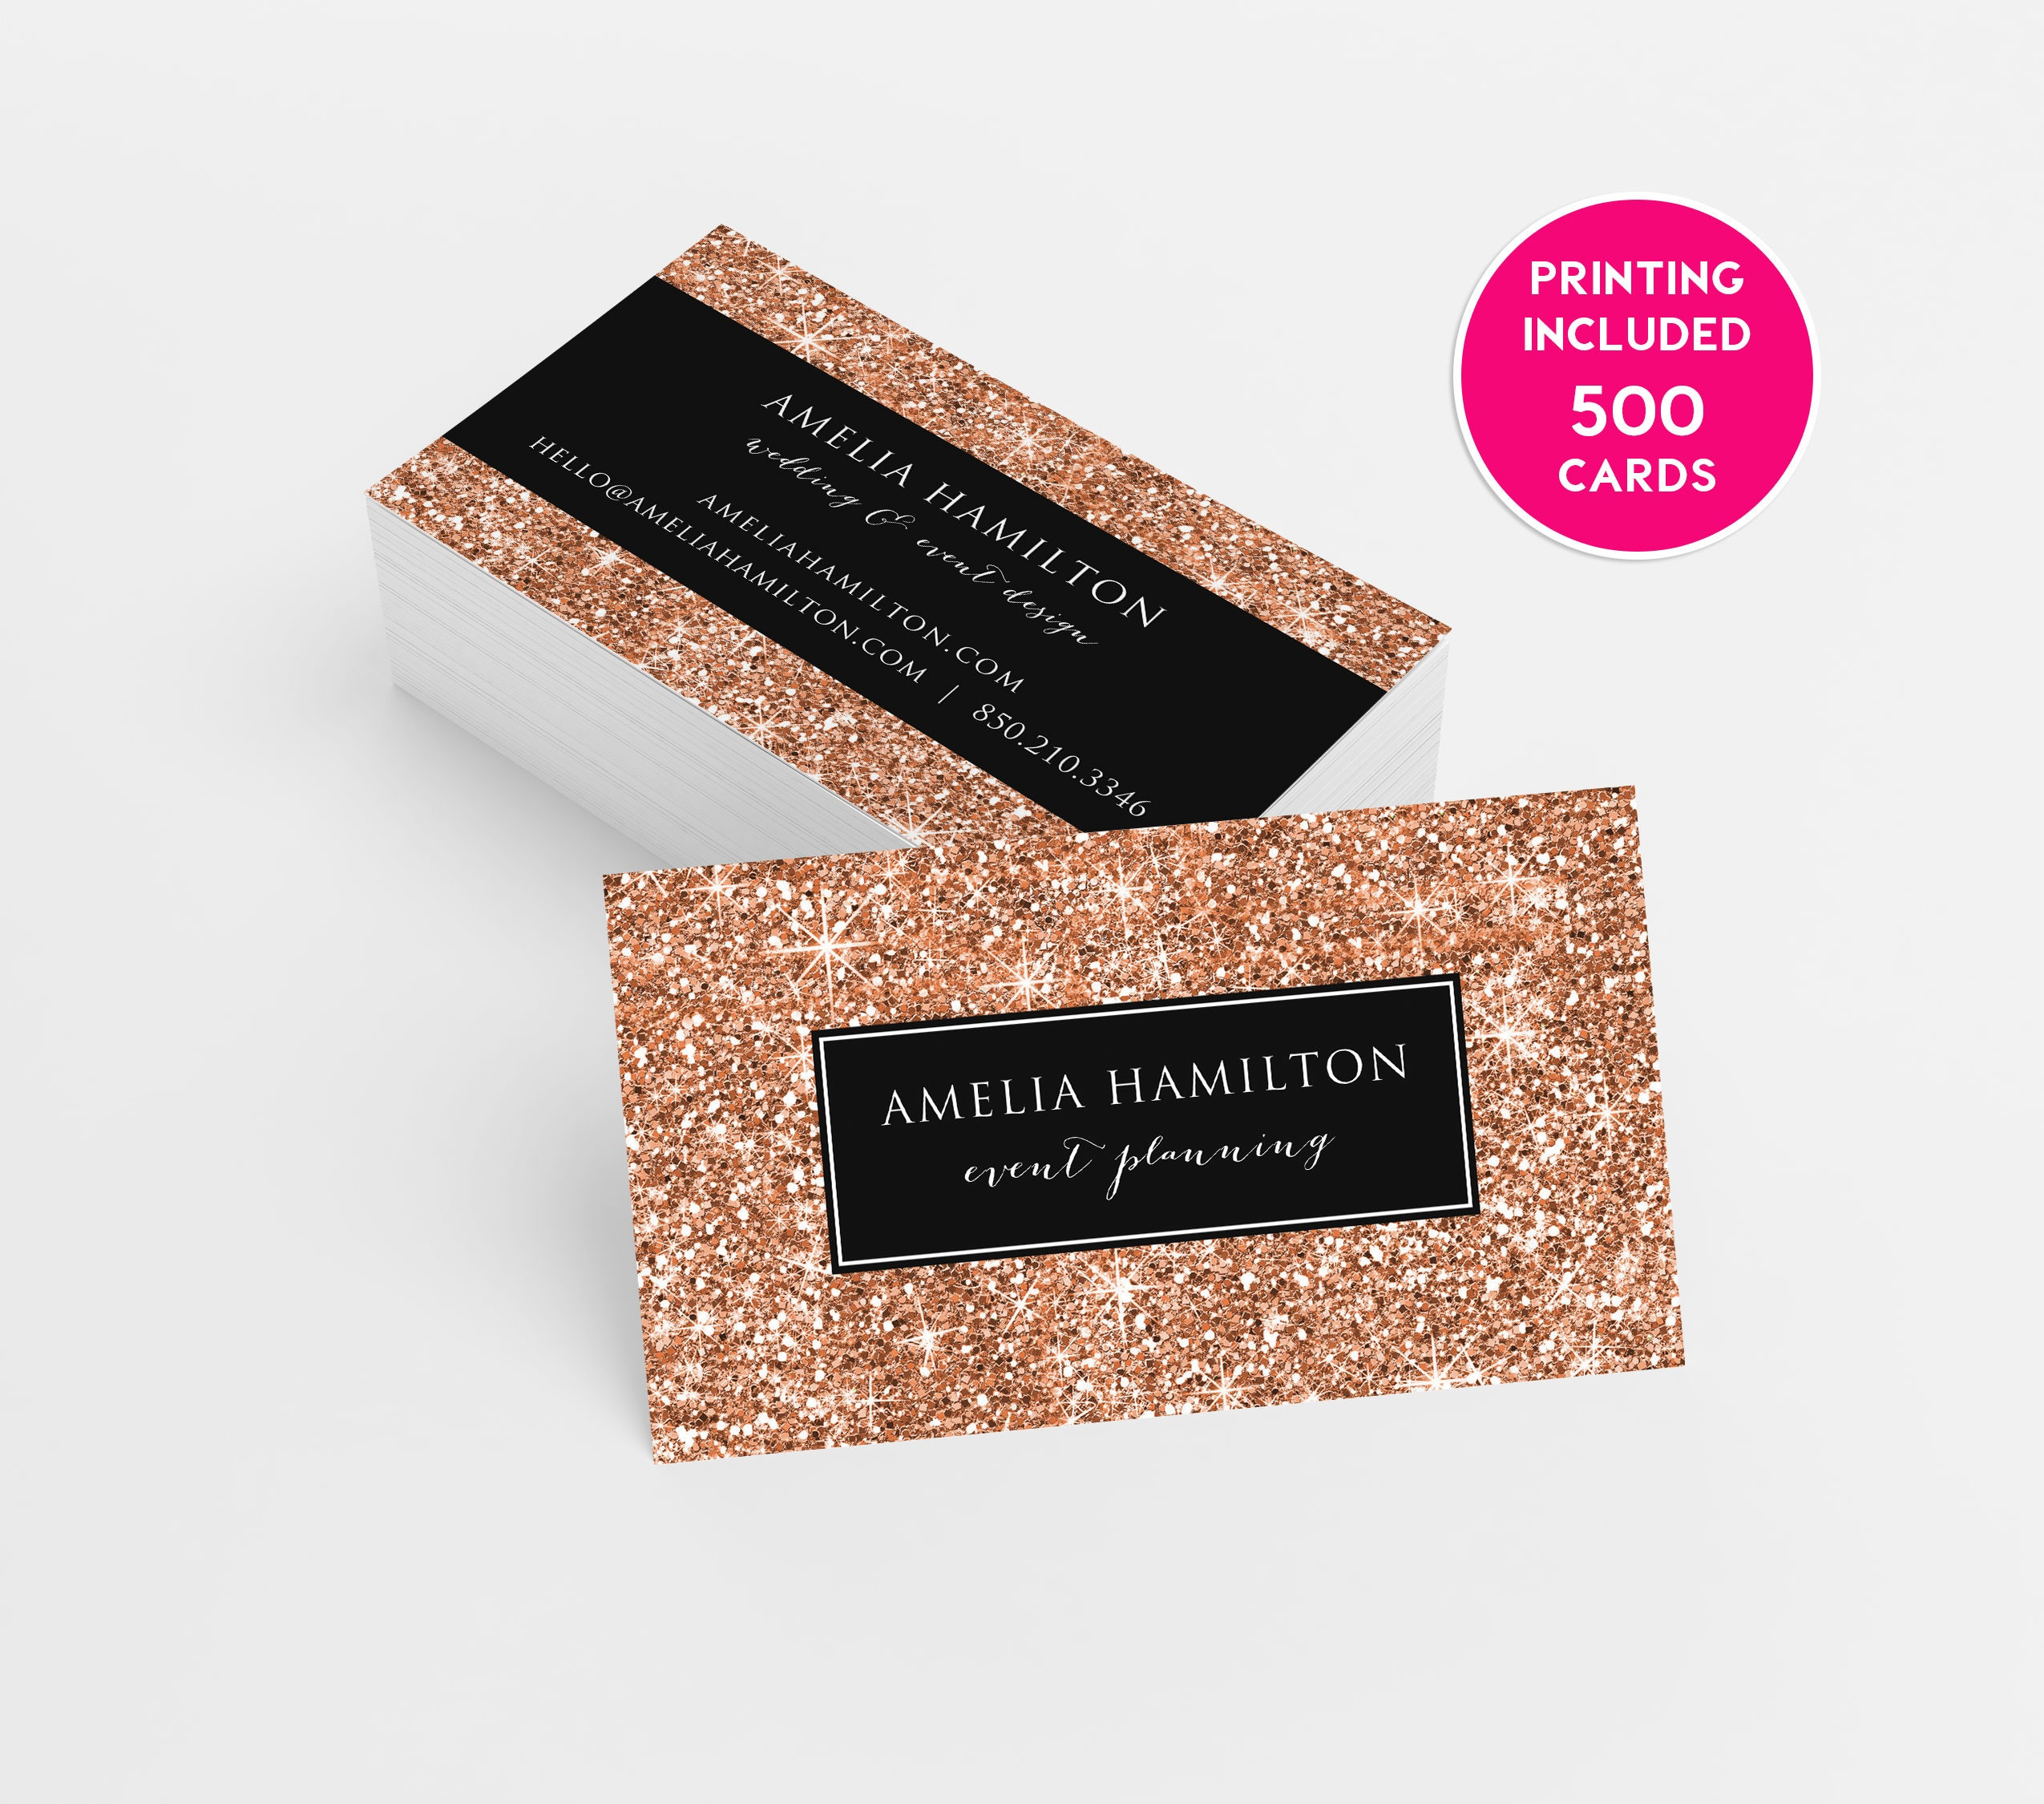 Rose Gold Glitter Business Cards Design 500 Printed Business